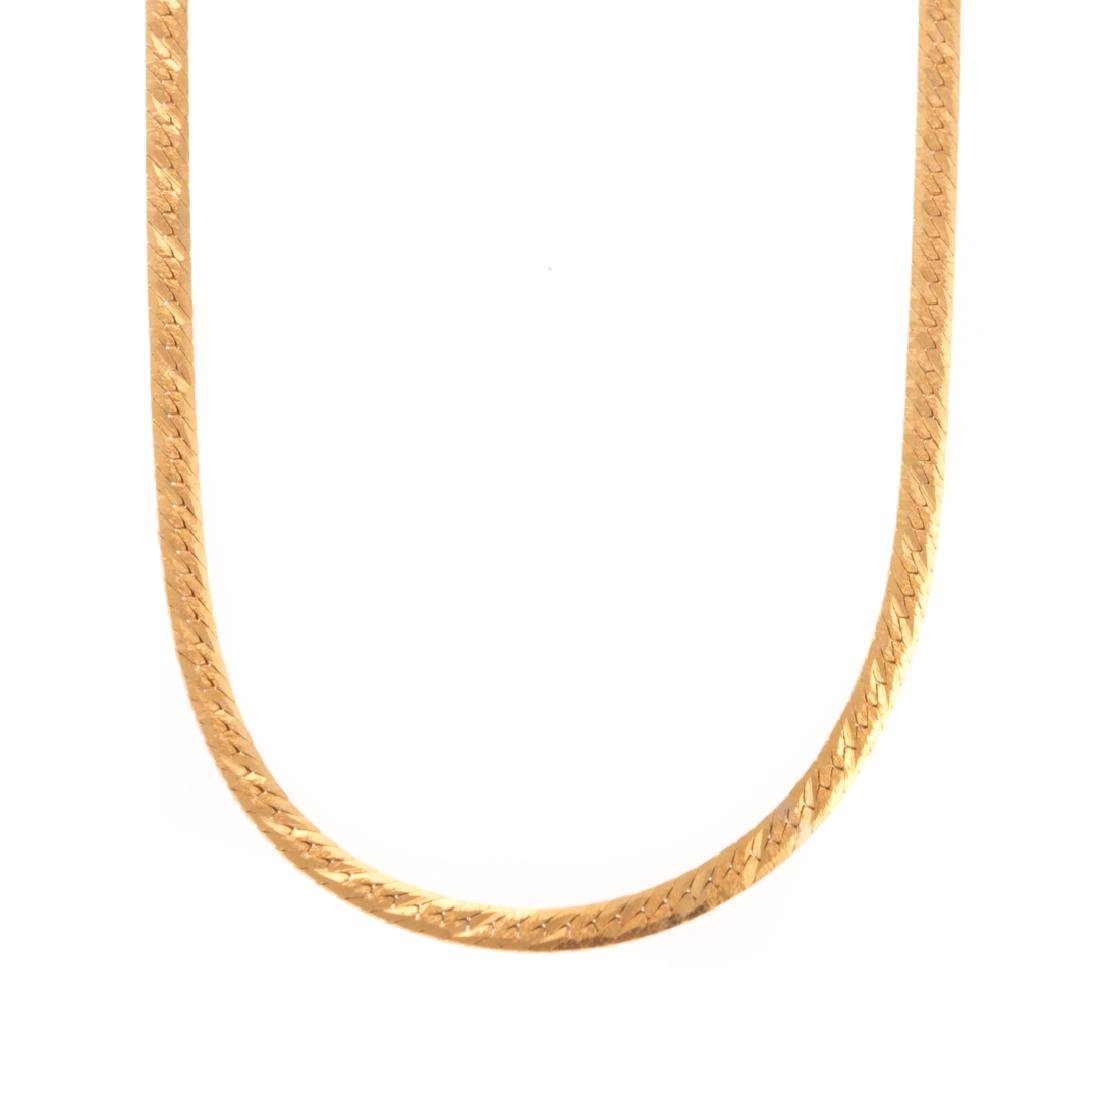 An Italian Herringbone Chain in 14K Gold